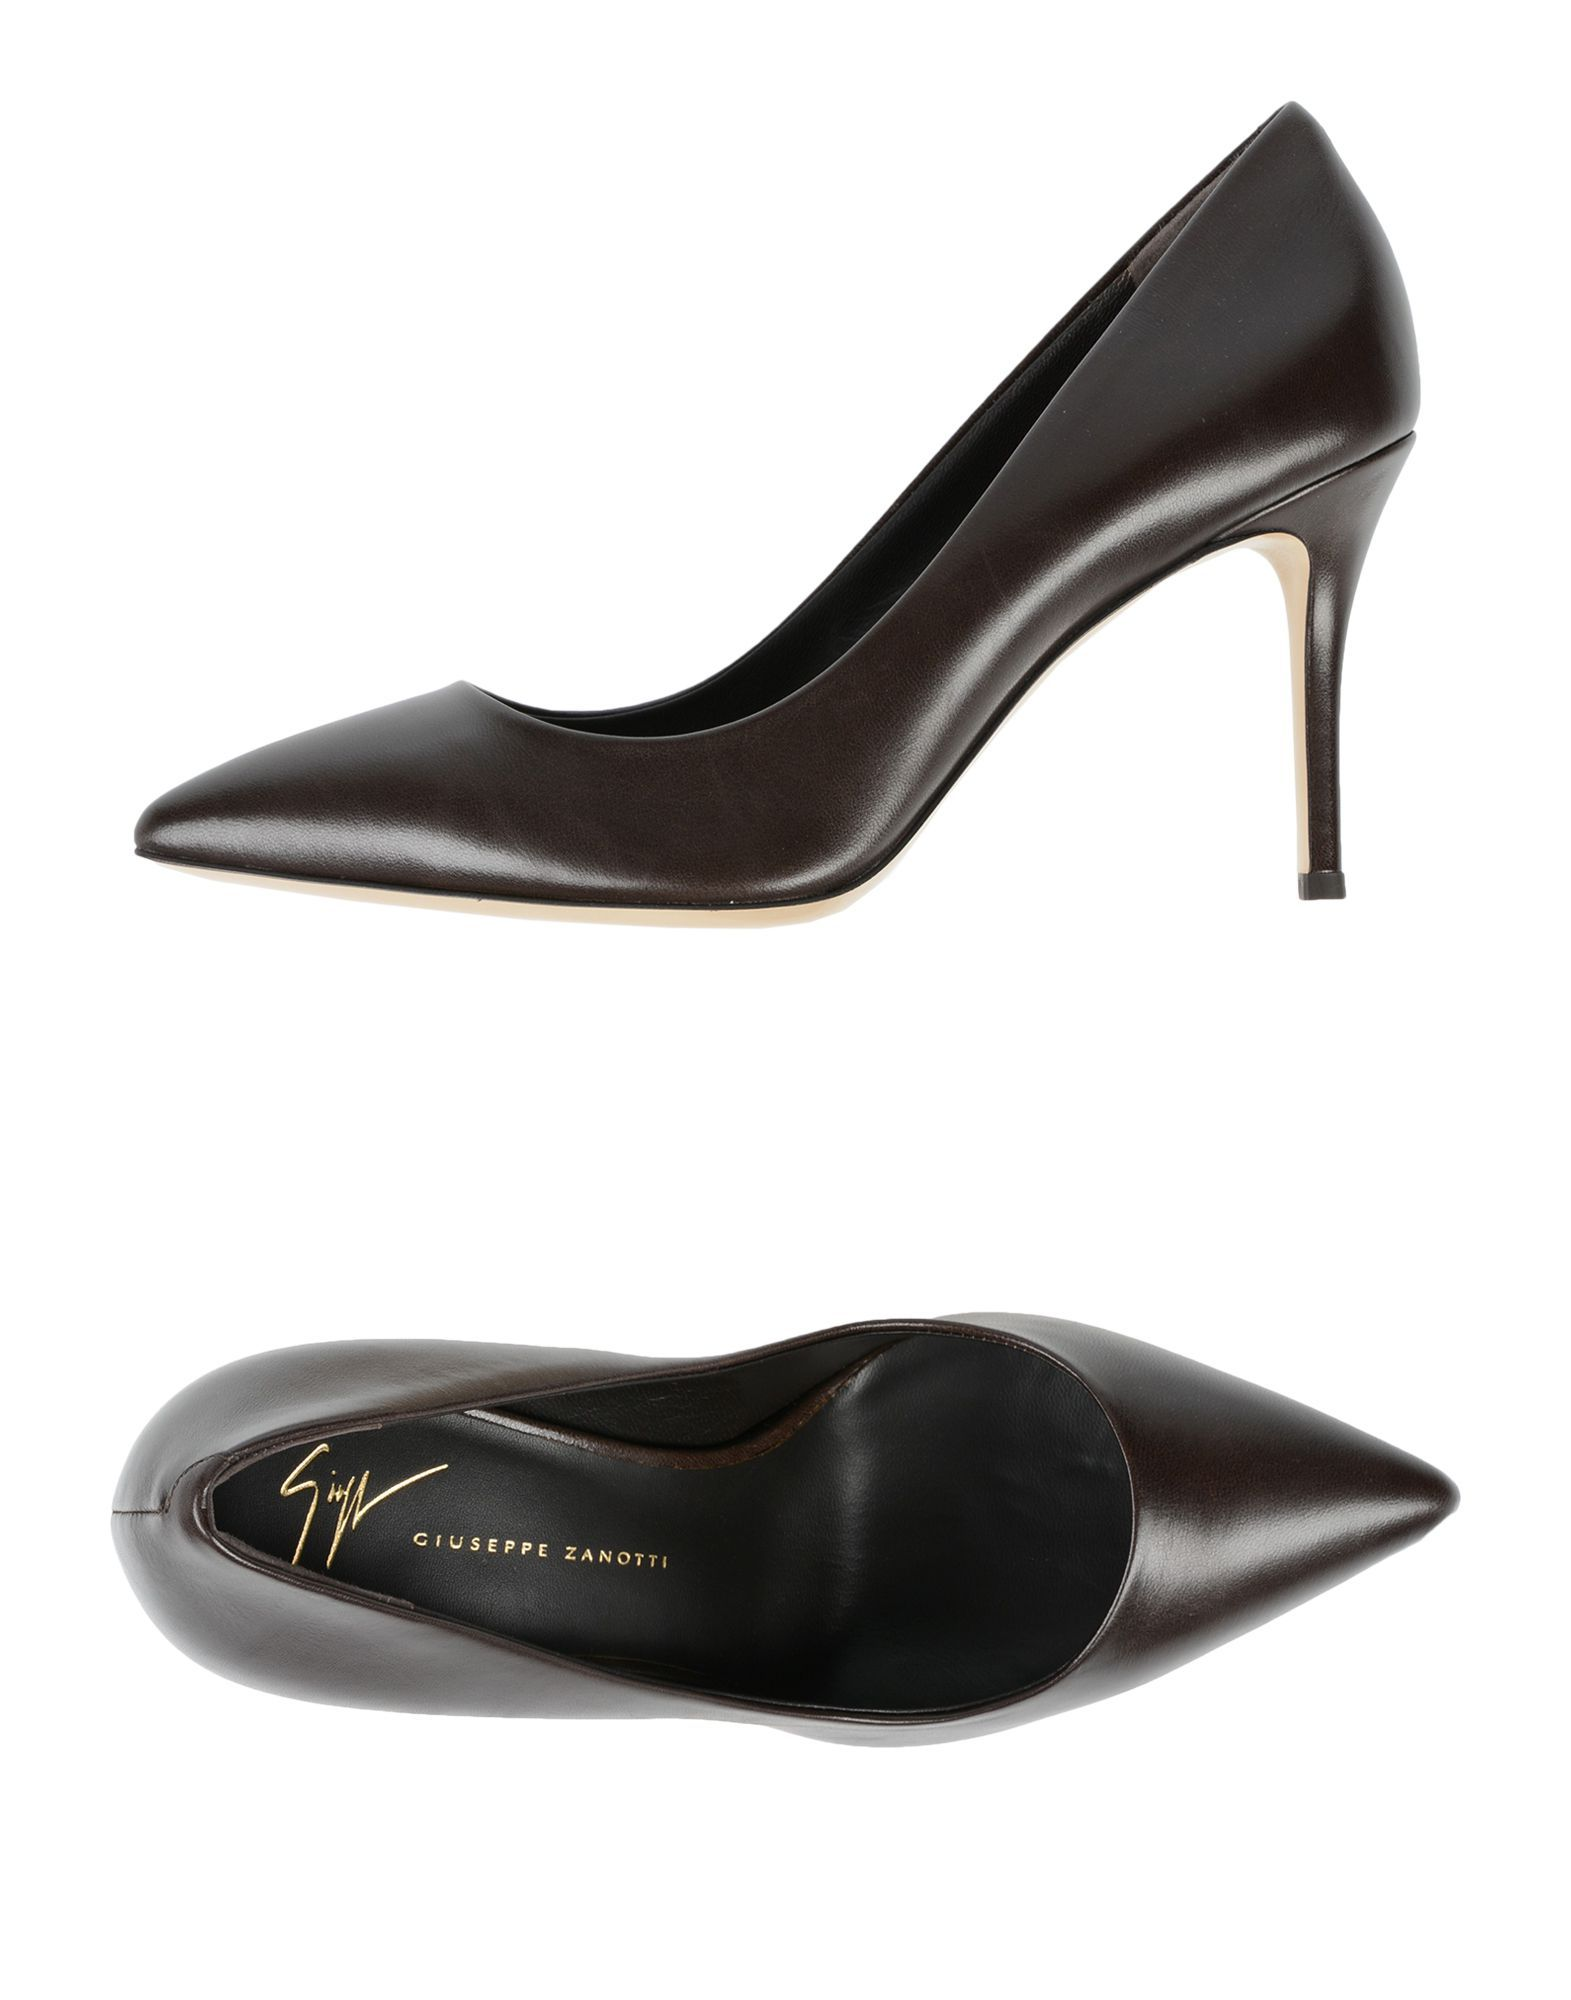 Giuseppe Zanotti Dark Brown Leather Pointed Court Shoes